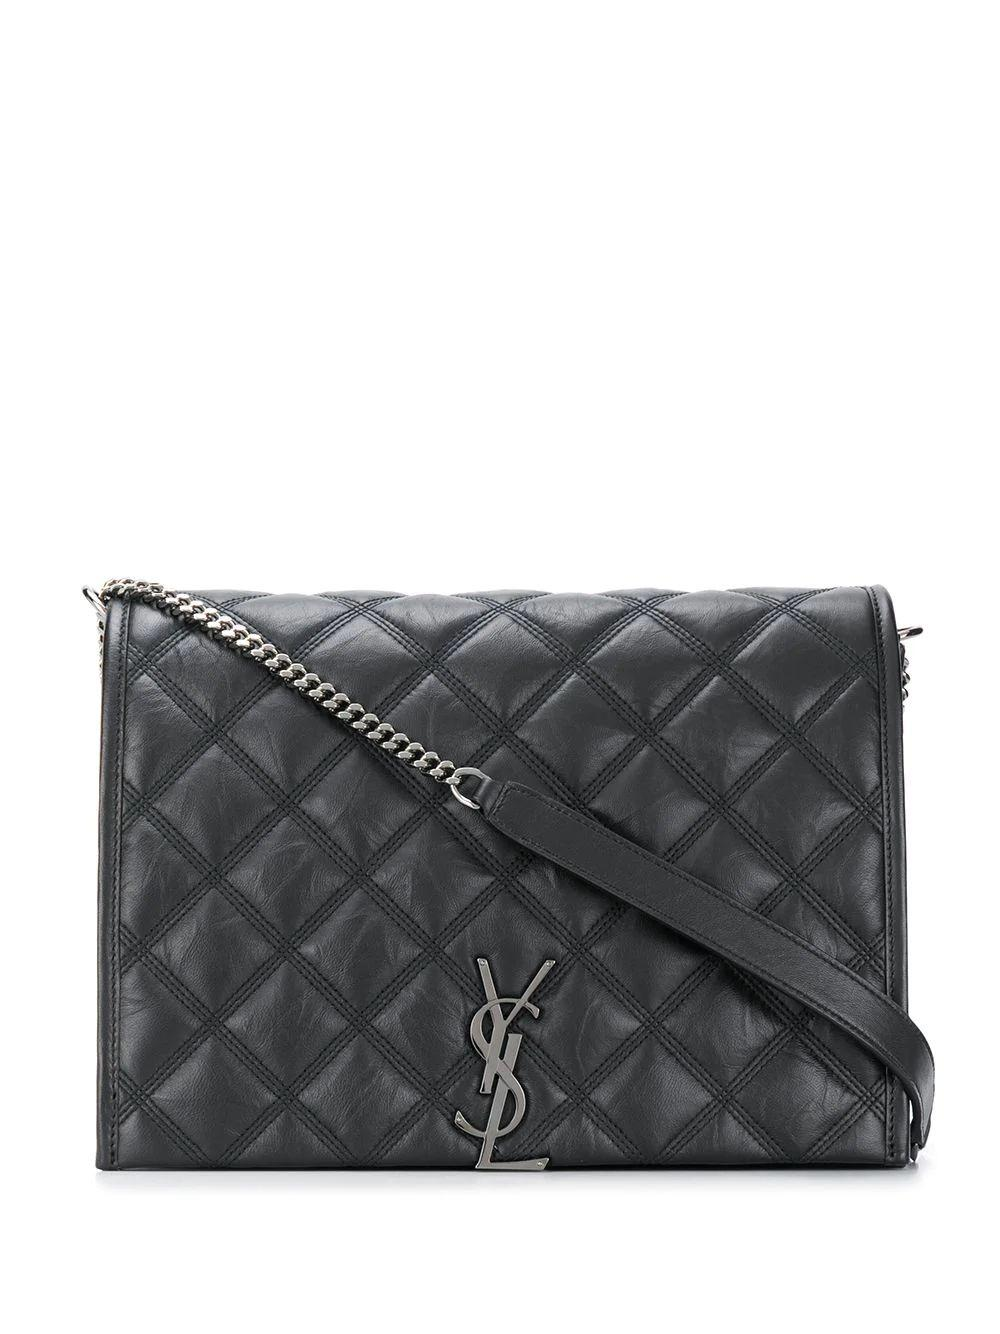 Becky Quilted Leather Bag Item # 5796071UQ23